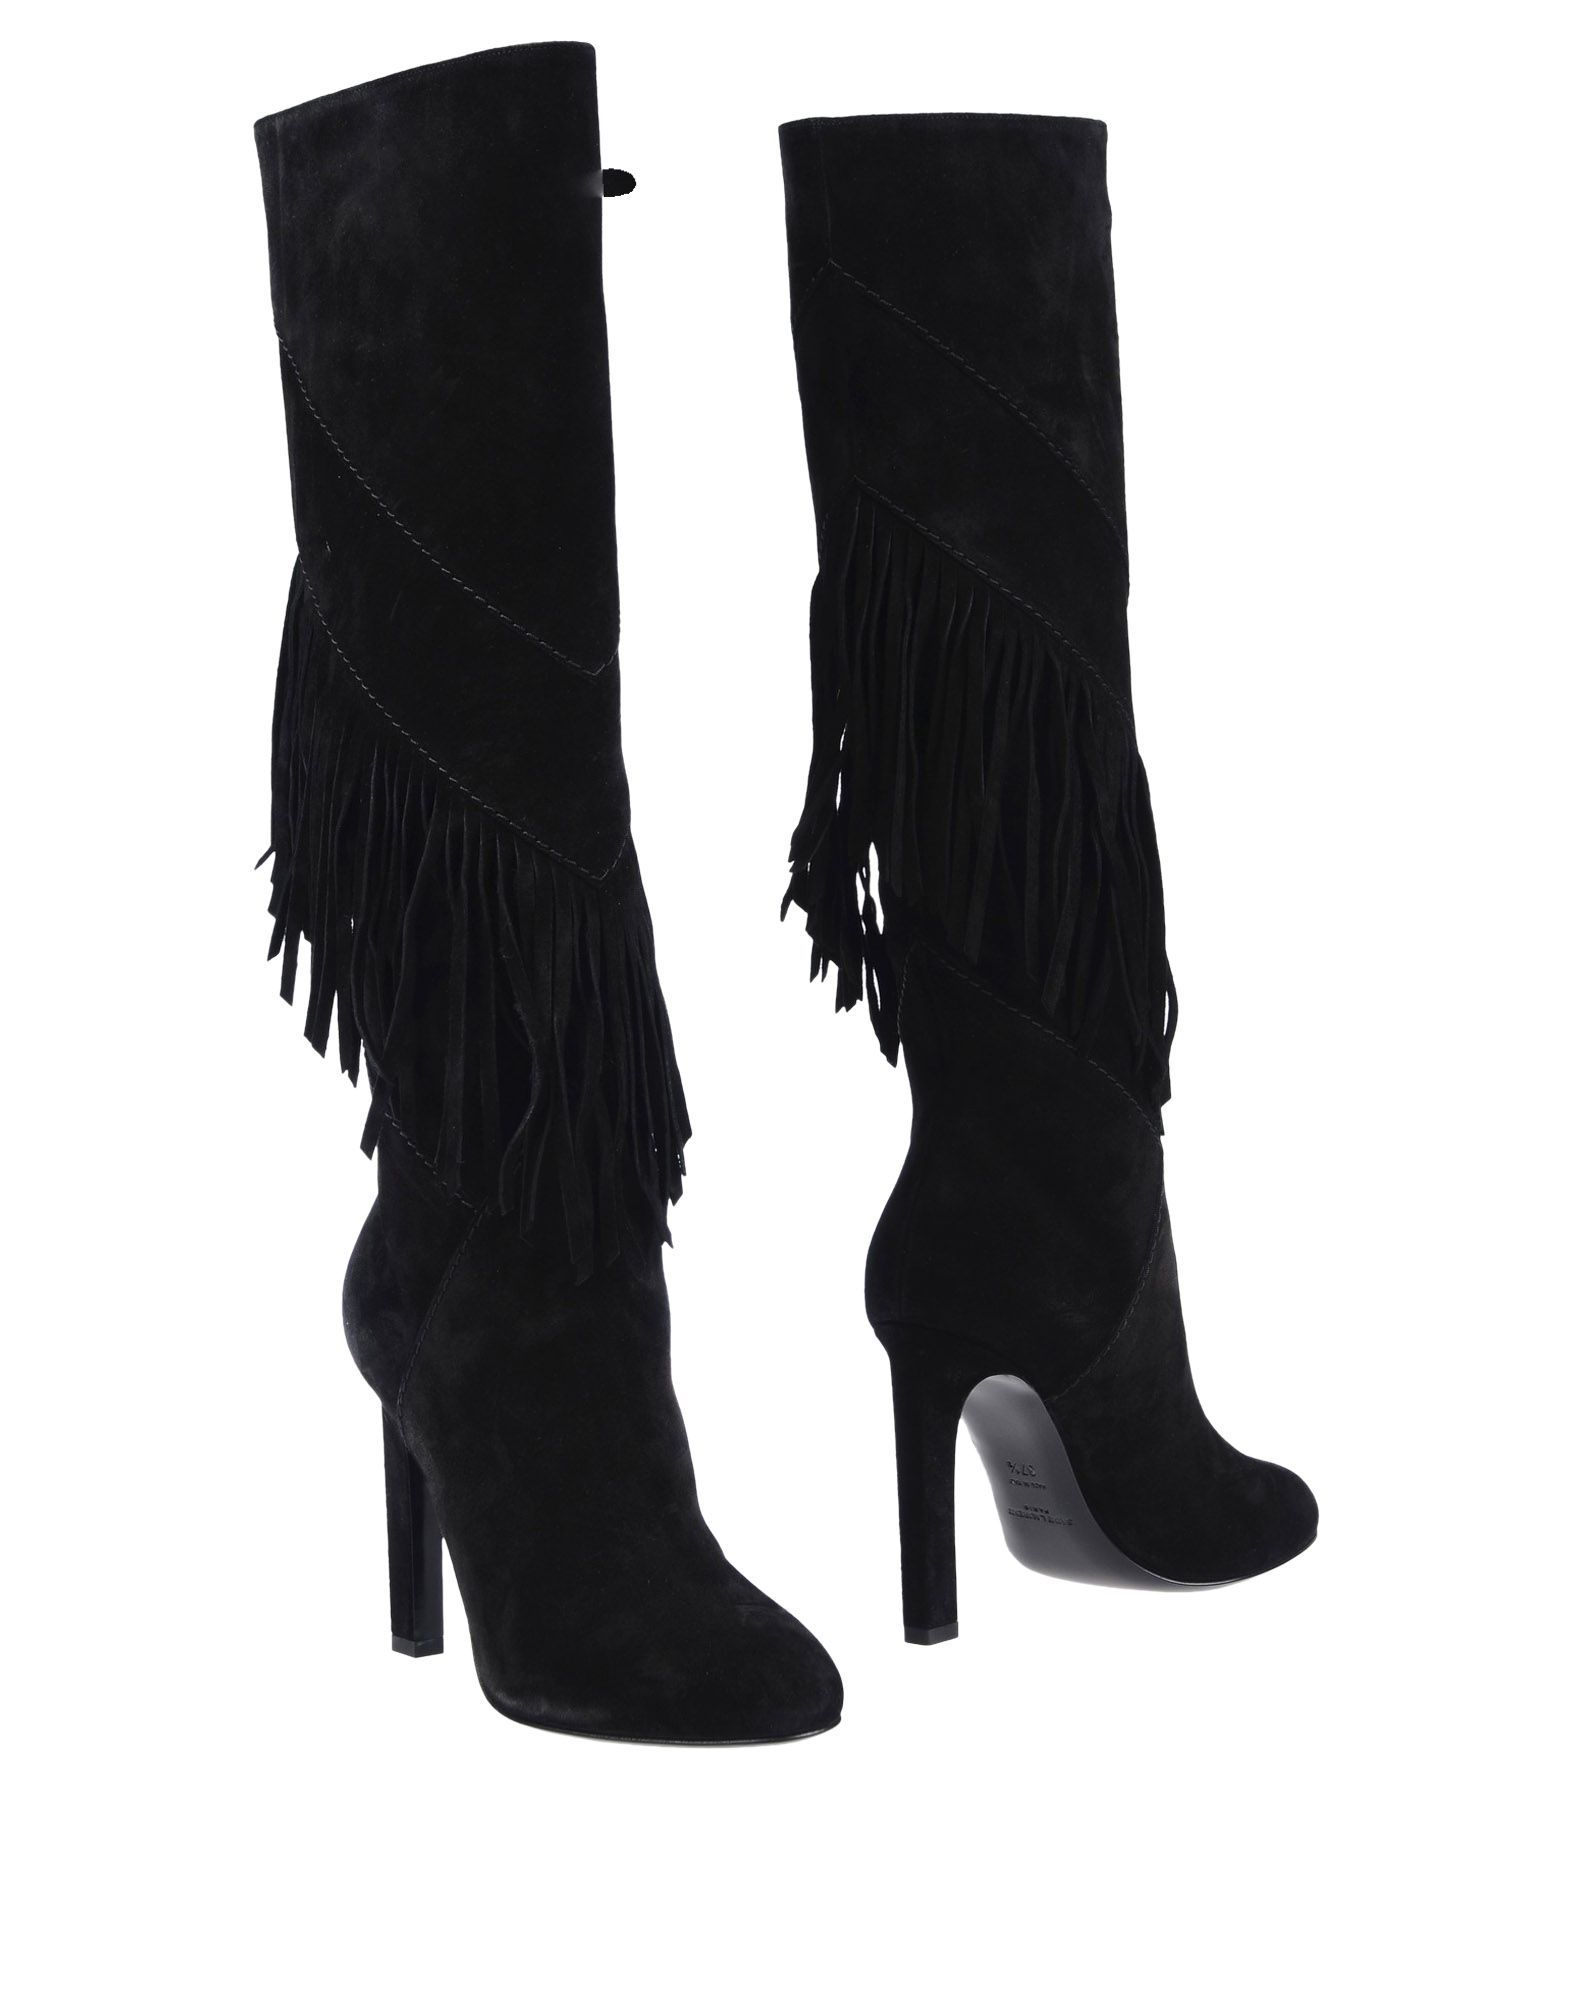 Saint Laurent Black Leather Fringed Knee High Boots